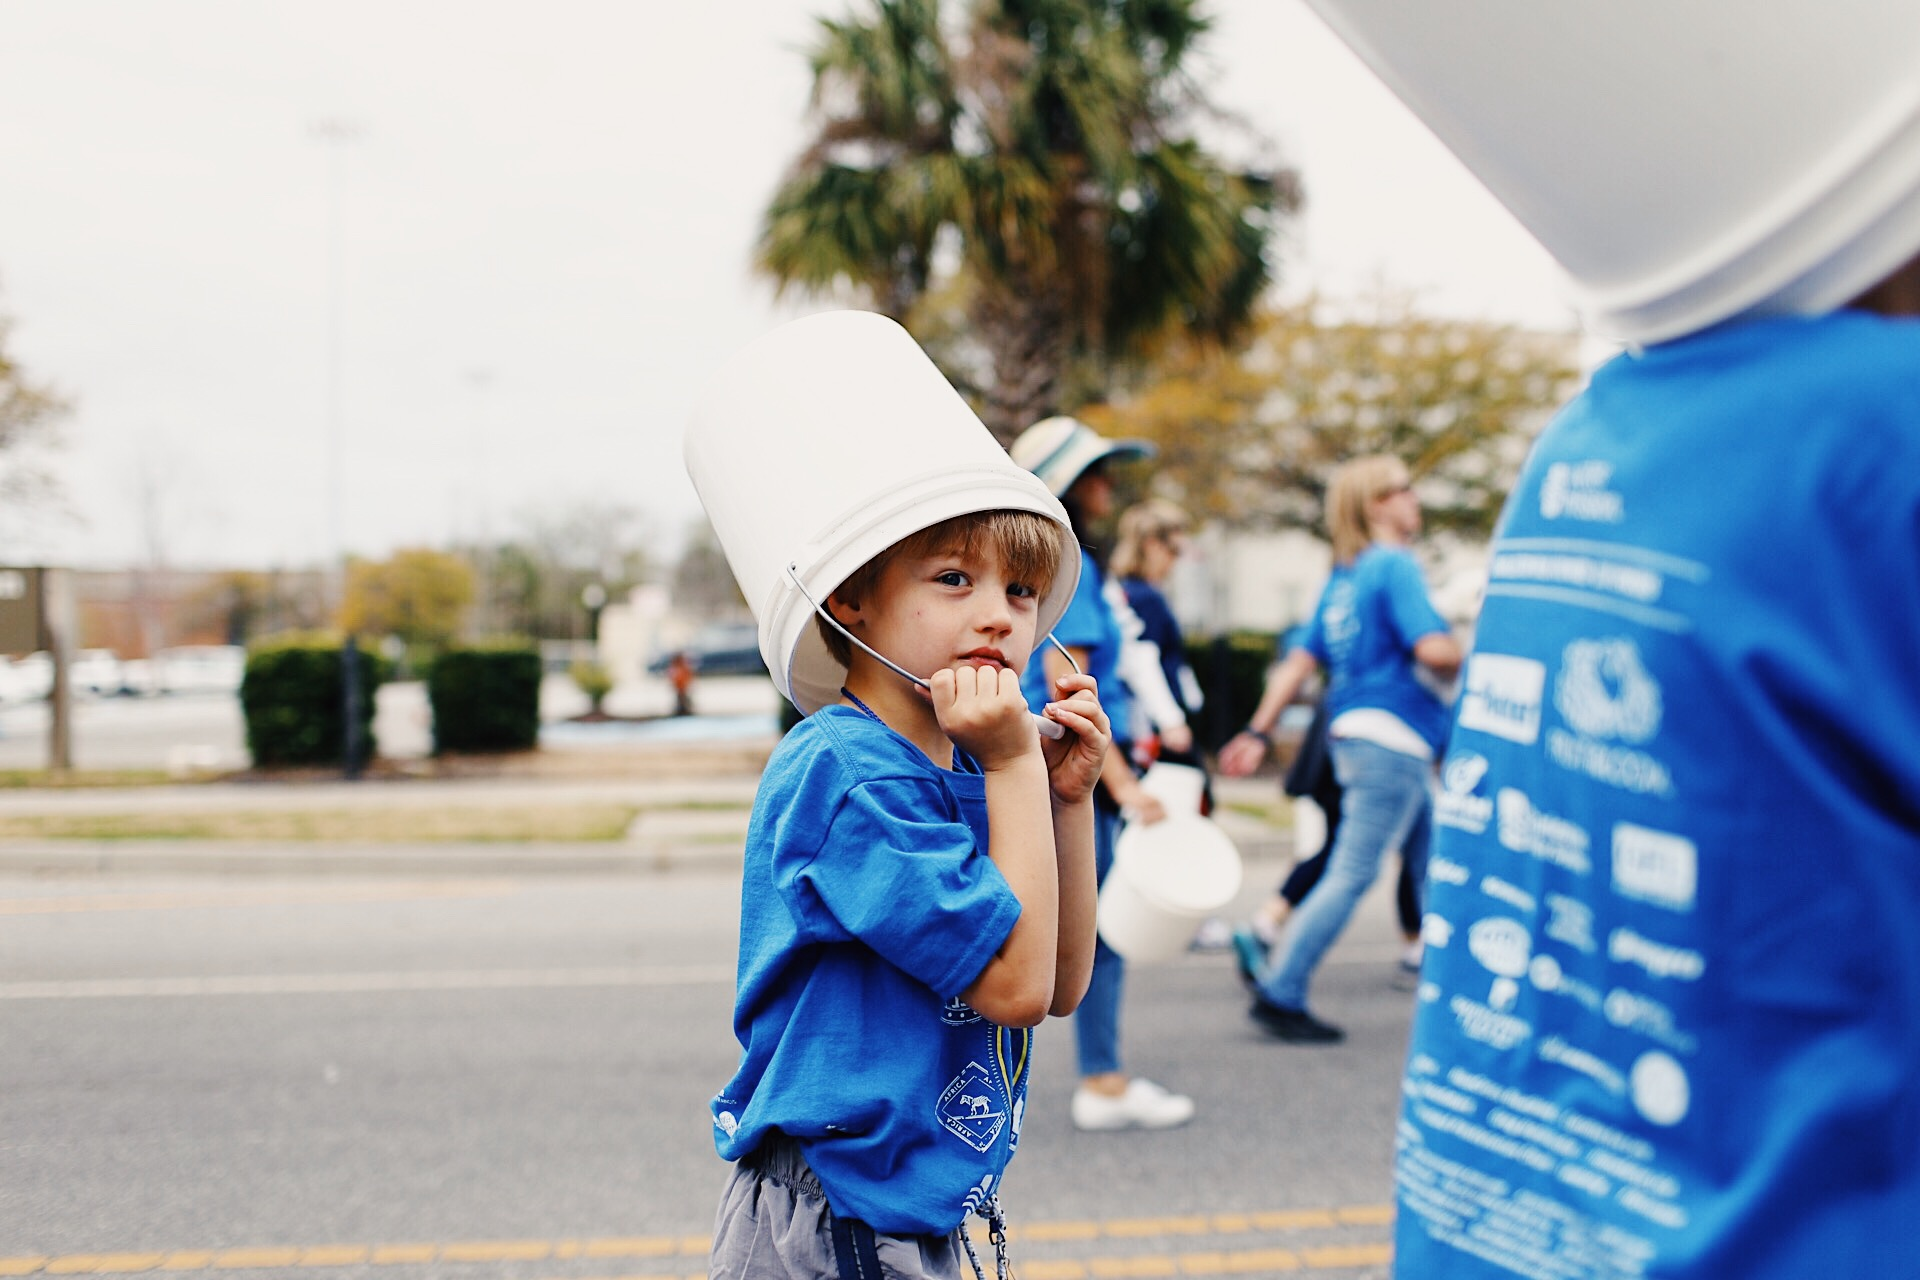 A young boy walks with his bucket on his head.